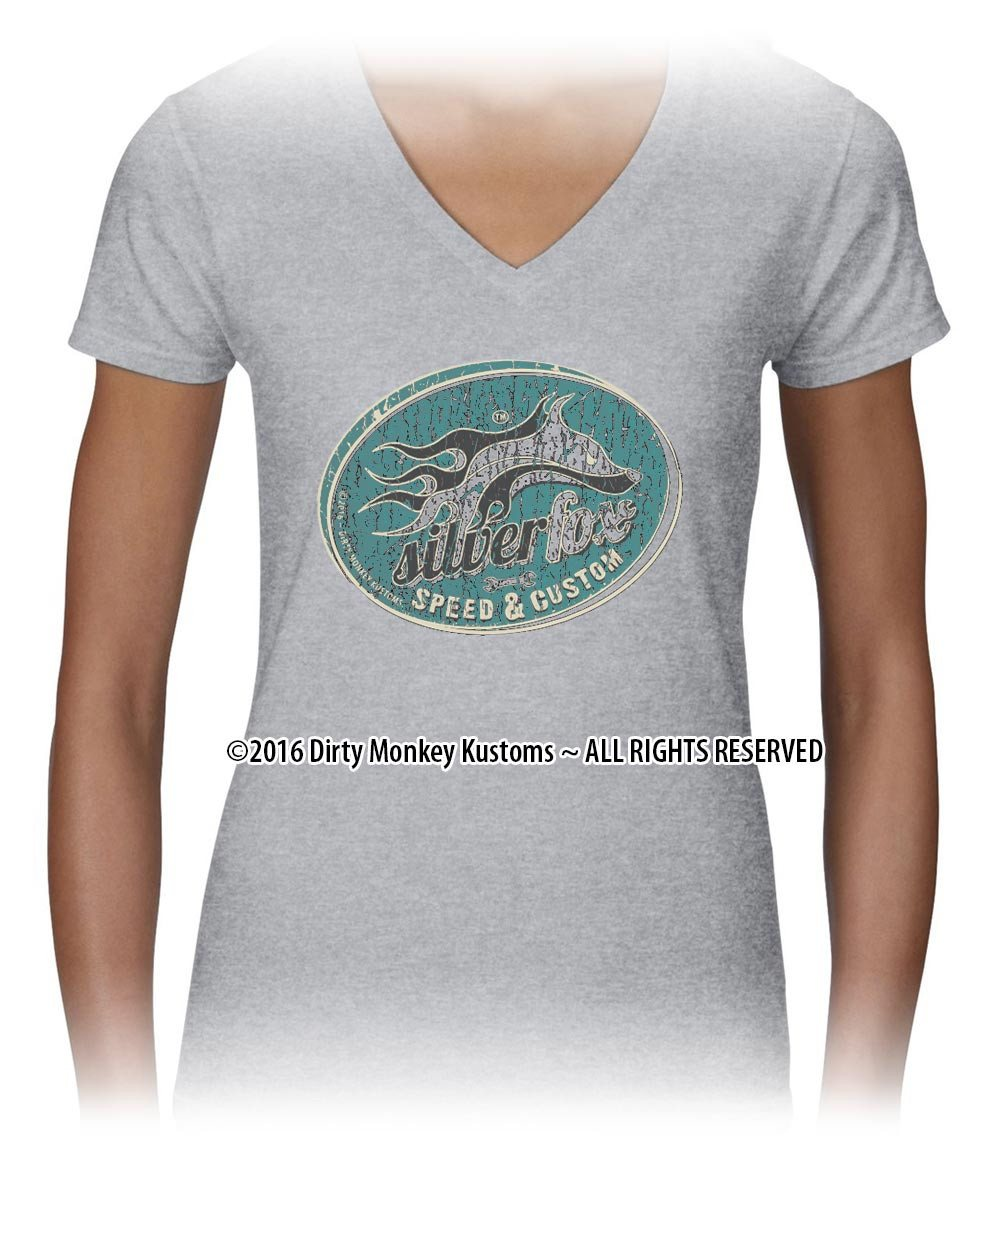 Ladies Hot Rod t shirt - Silver Fox